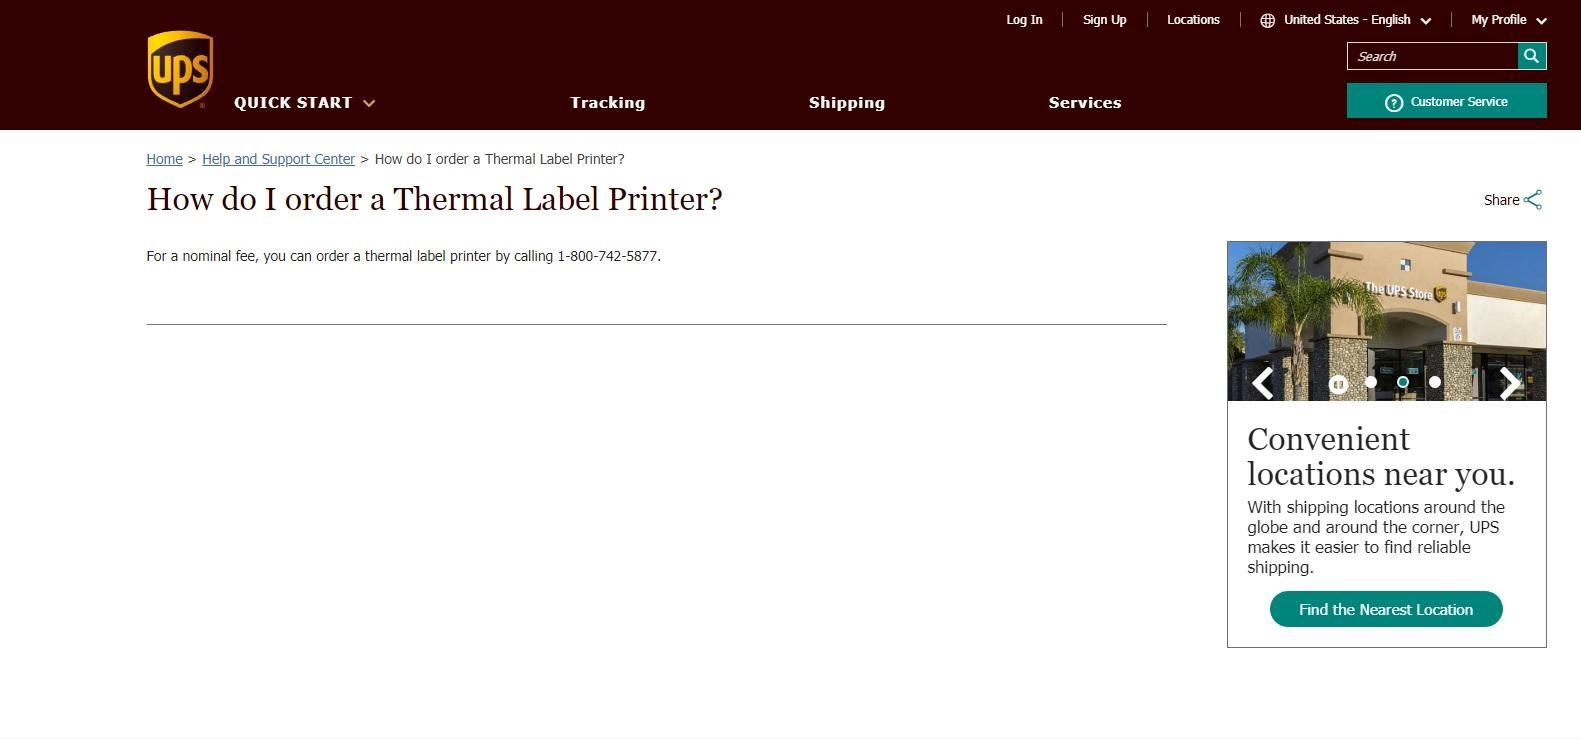 Want to Know How to Get a Free UPS Thermal Printer?